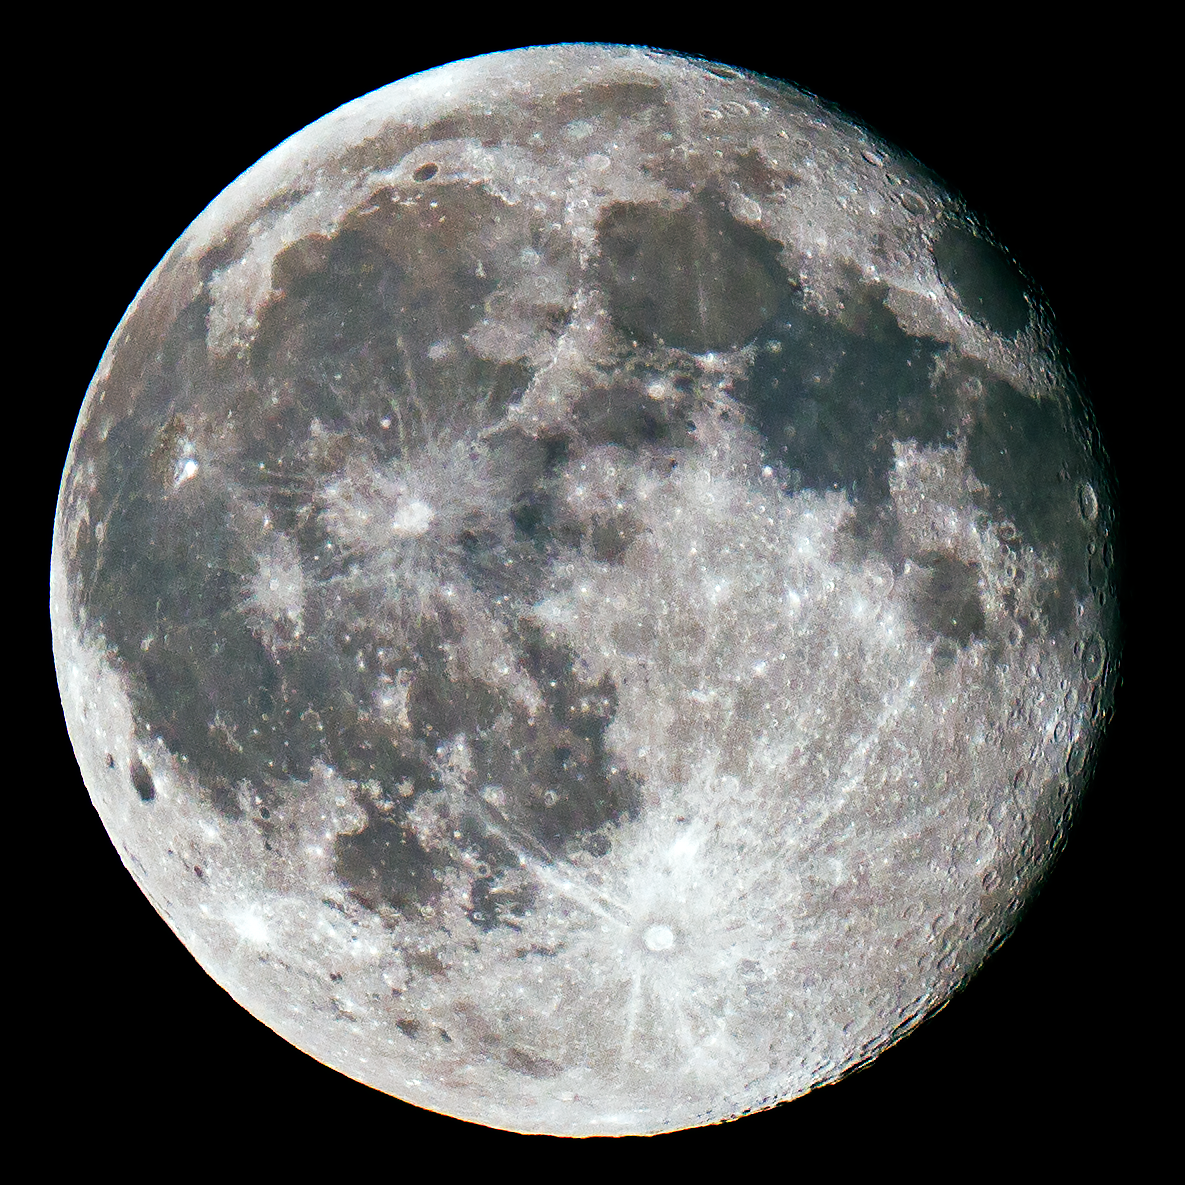 Moon Processing - Final Image